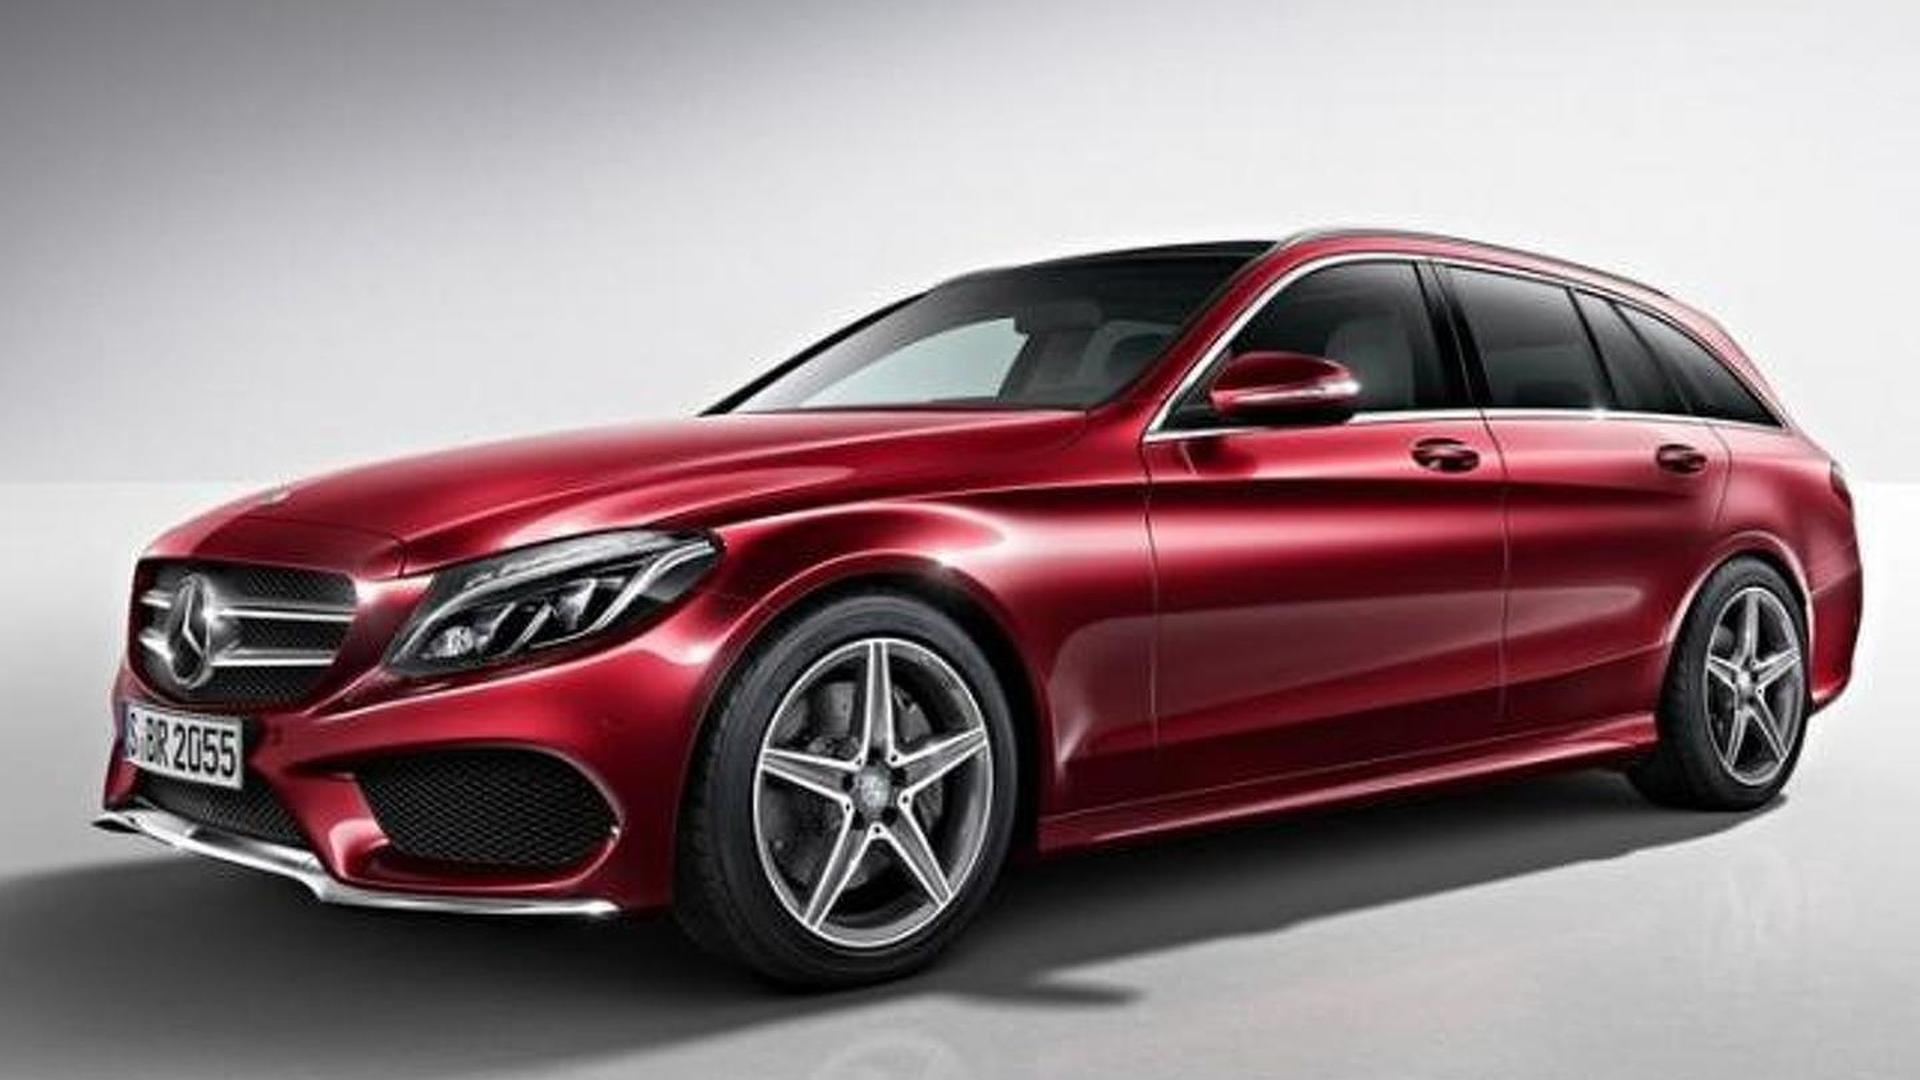 Mercedes-Benz plotting AMG Sport lineup to sit below fully-fledged AMG models - report